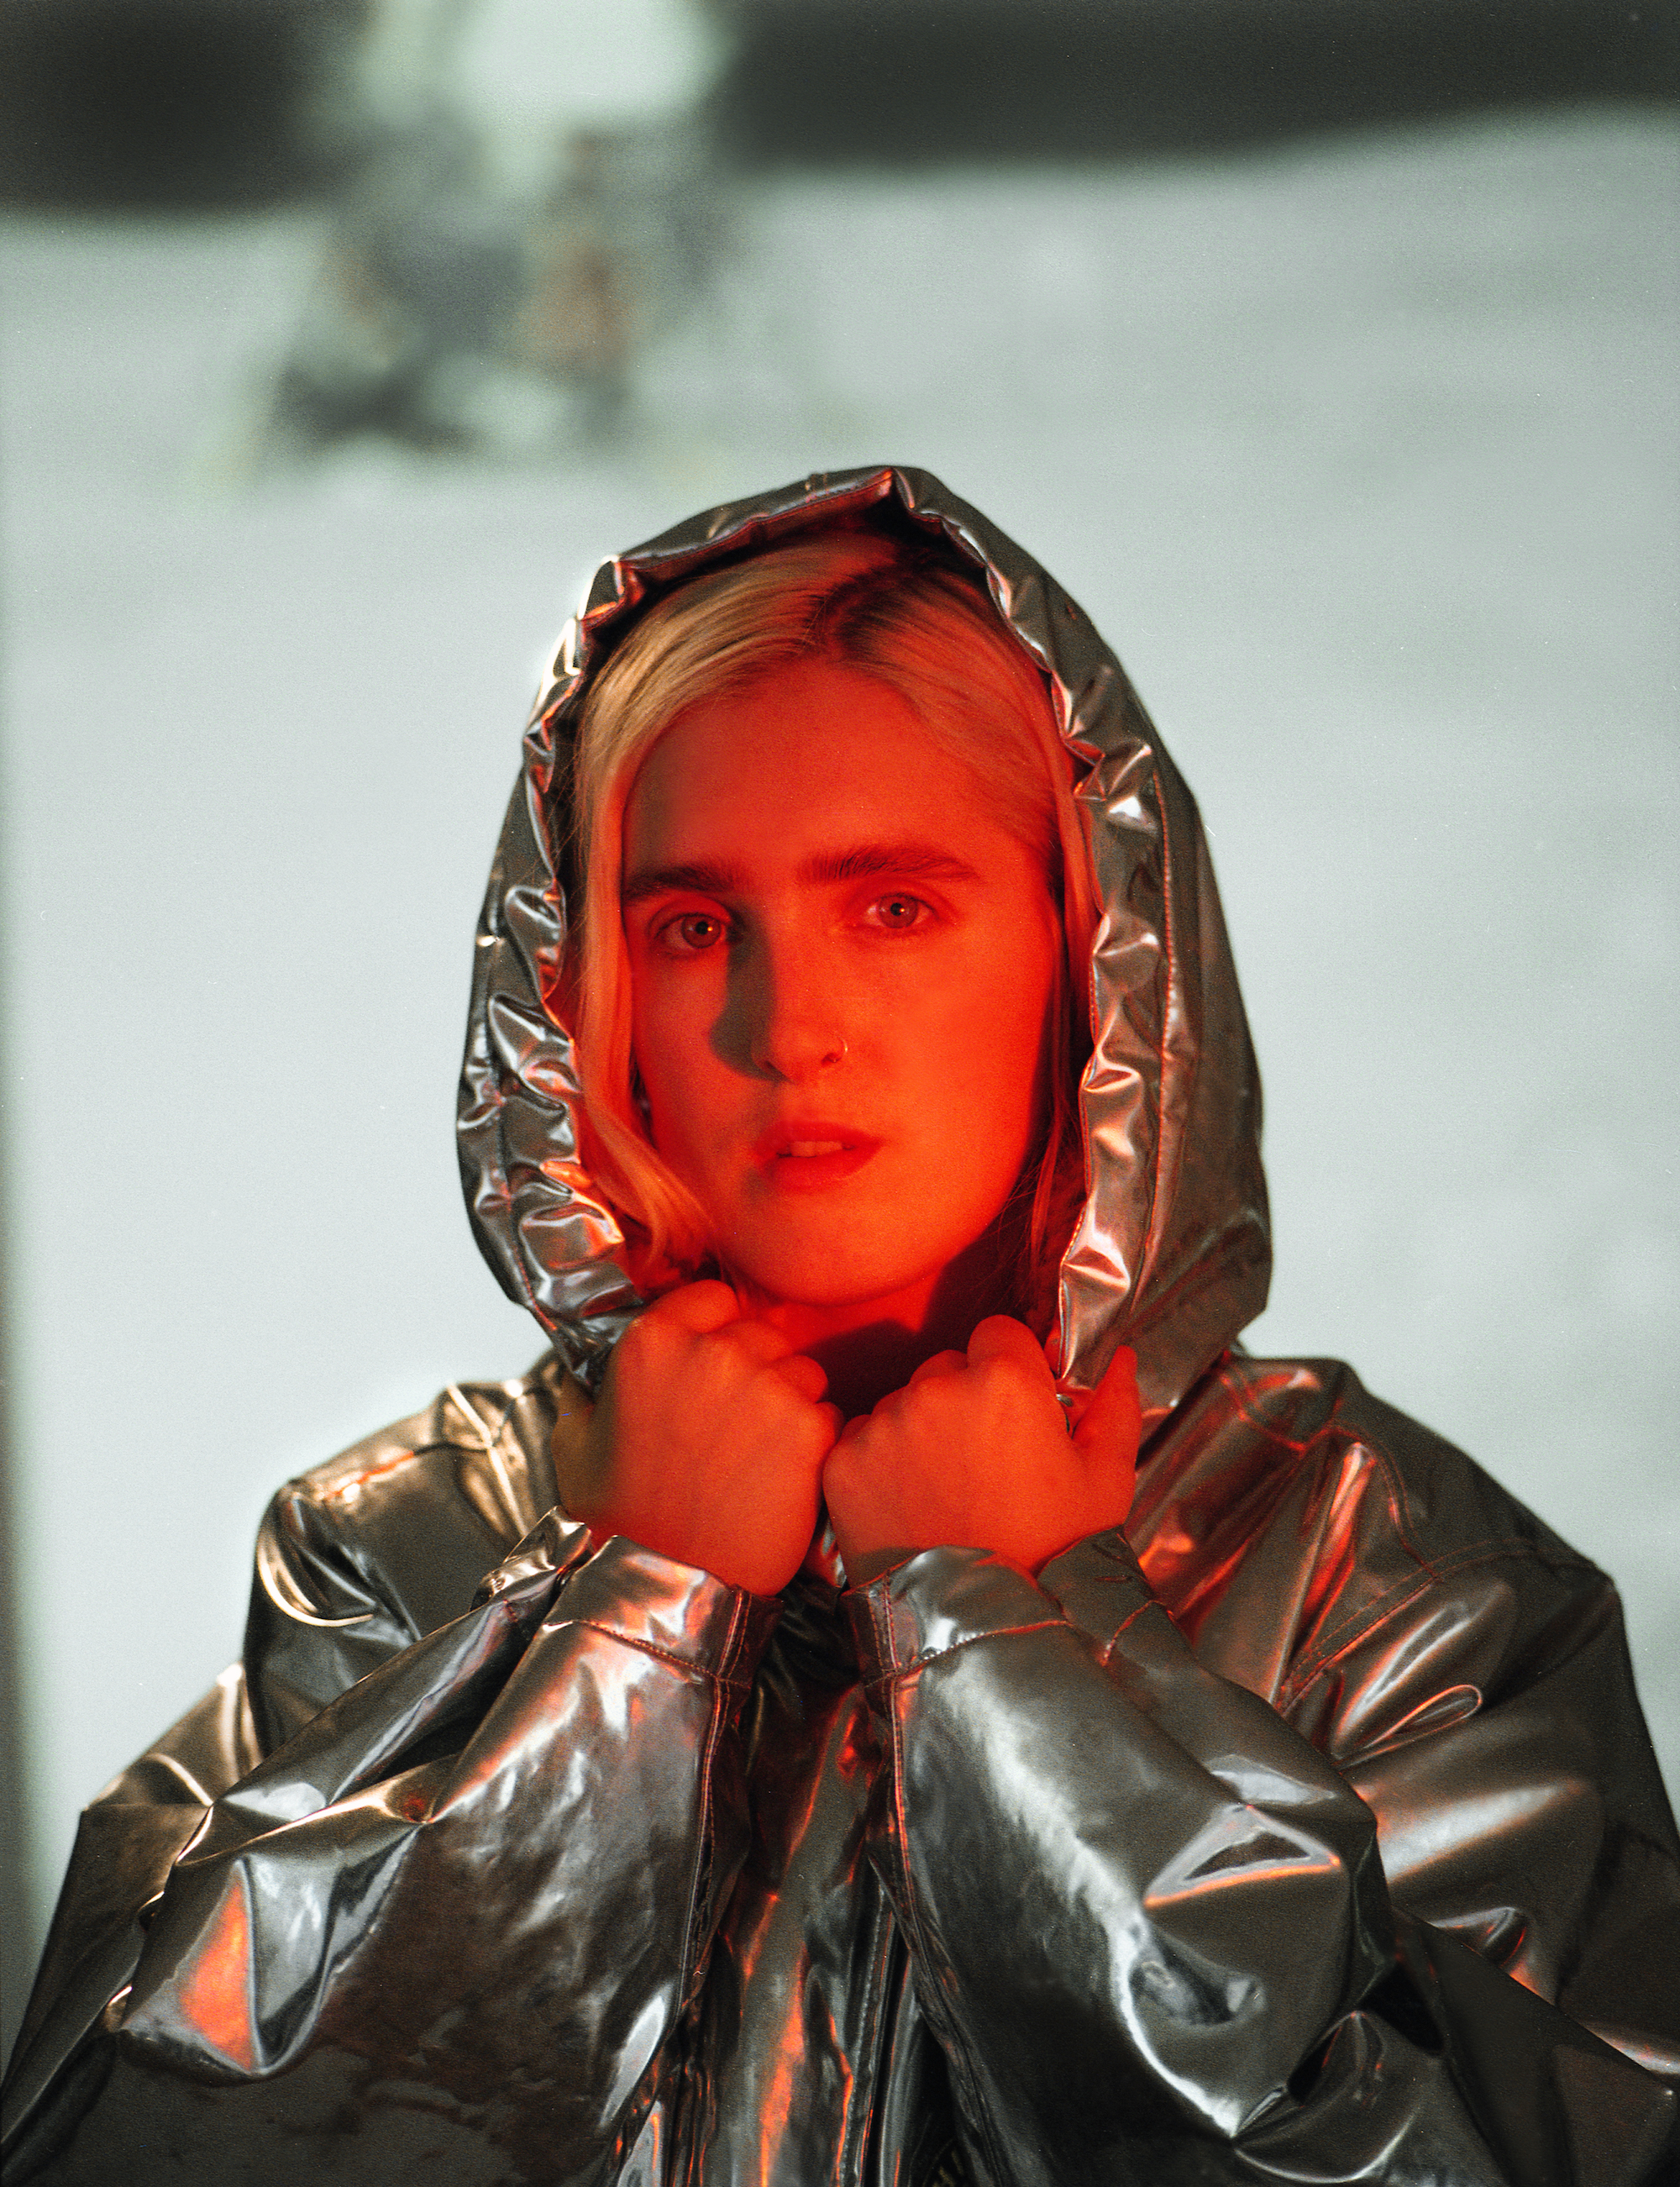 Singer Shura in the Omega Zine in the Summer 19 issue of Wonderland metallic puffer